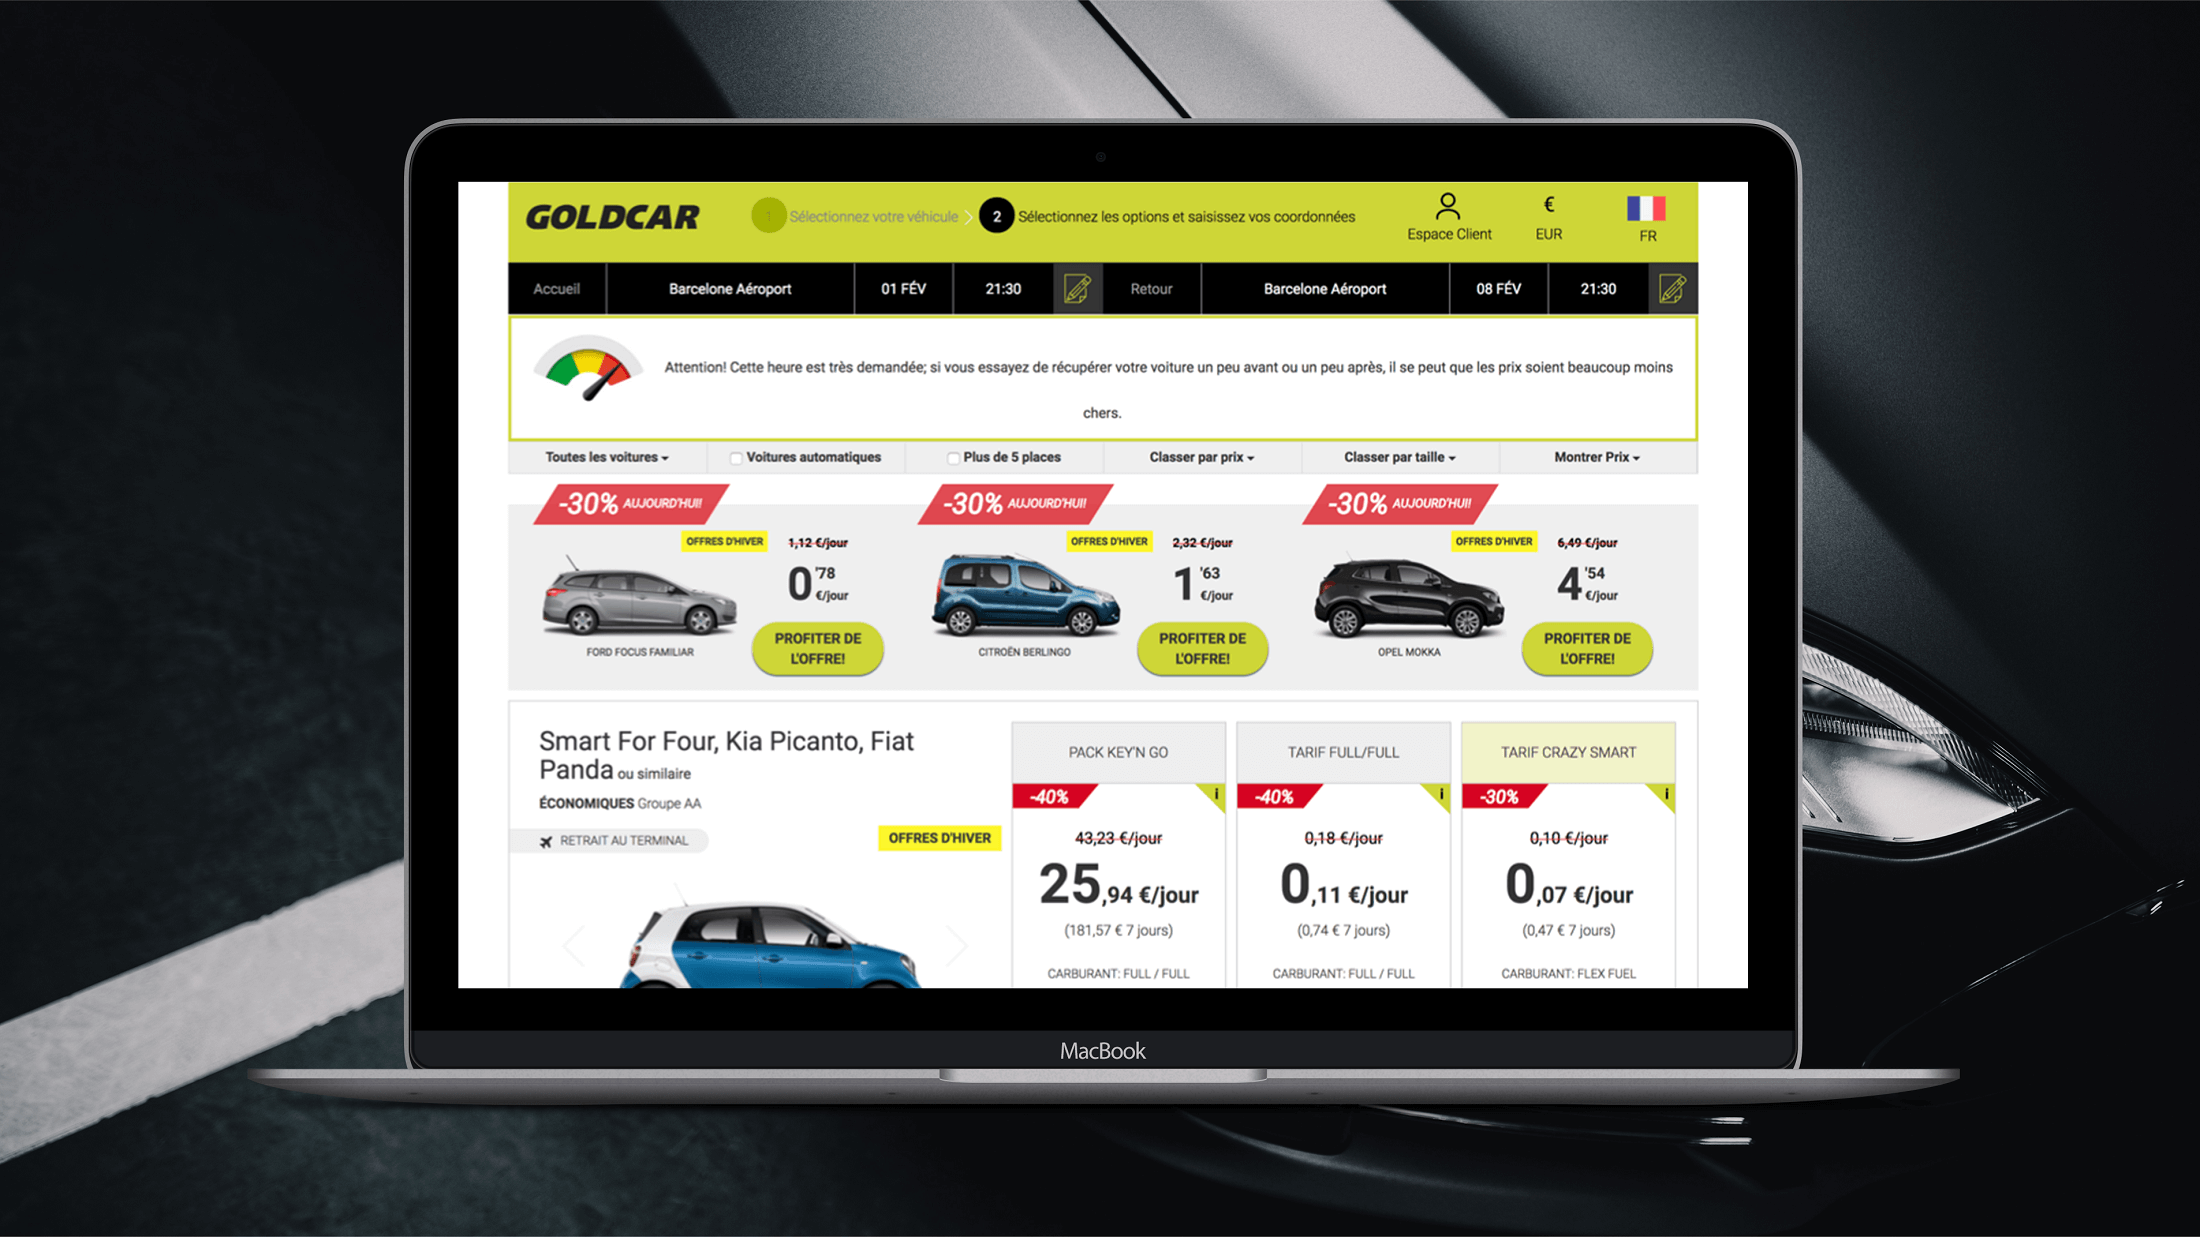 Goldcar website UX